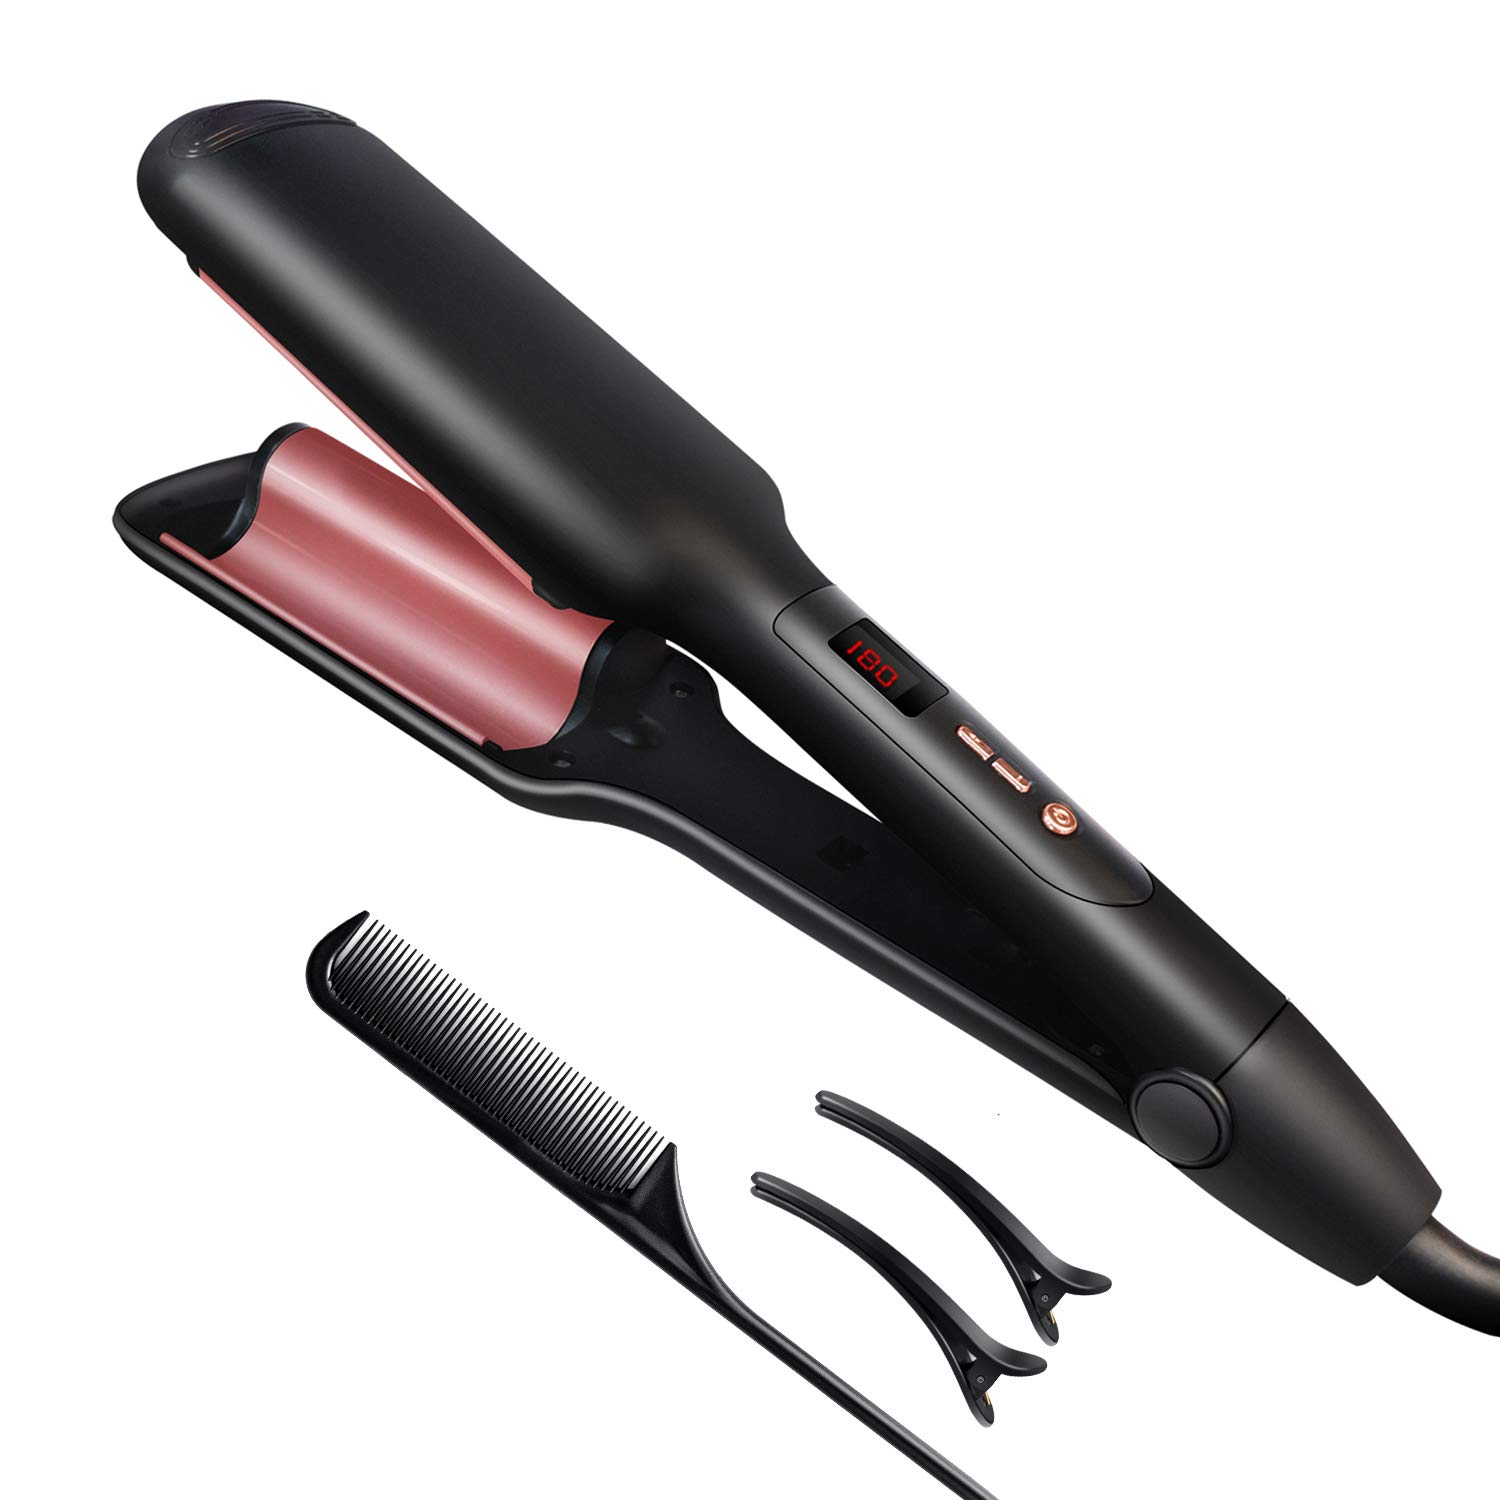 WESOPAN Crimper Hair Iron Deap Waver for Beachy Waves, Hair Waver Styling Tool Curling Iron Wand Caremic Instant Curls with Temperature Control and 110-240v Worldwide Votage by WESOPAN